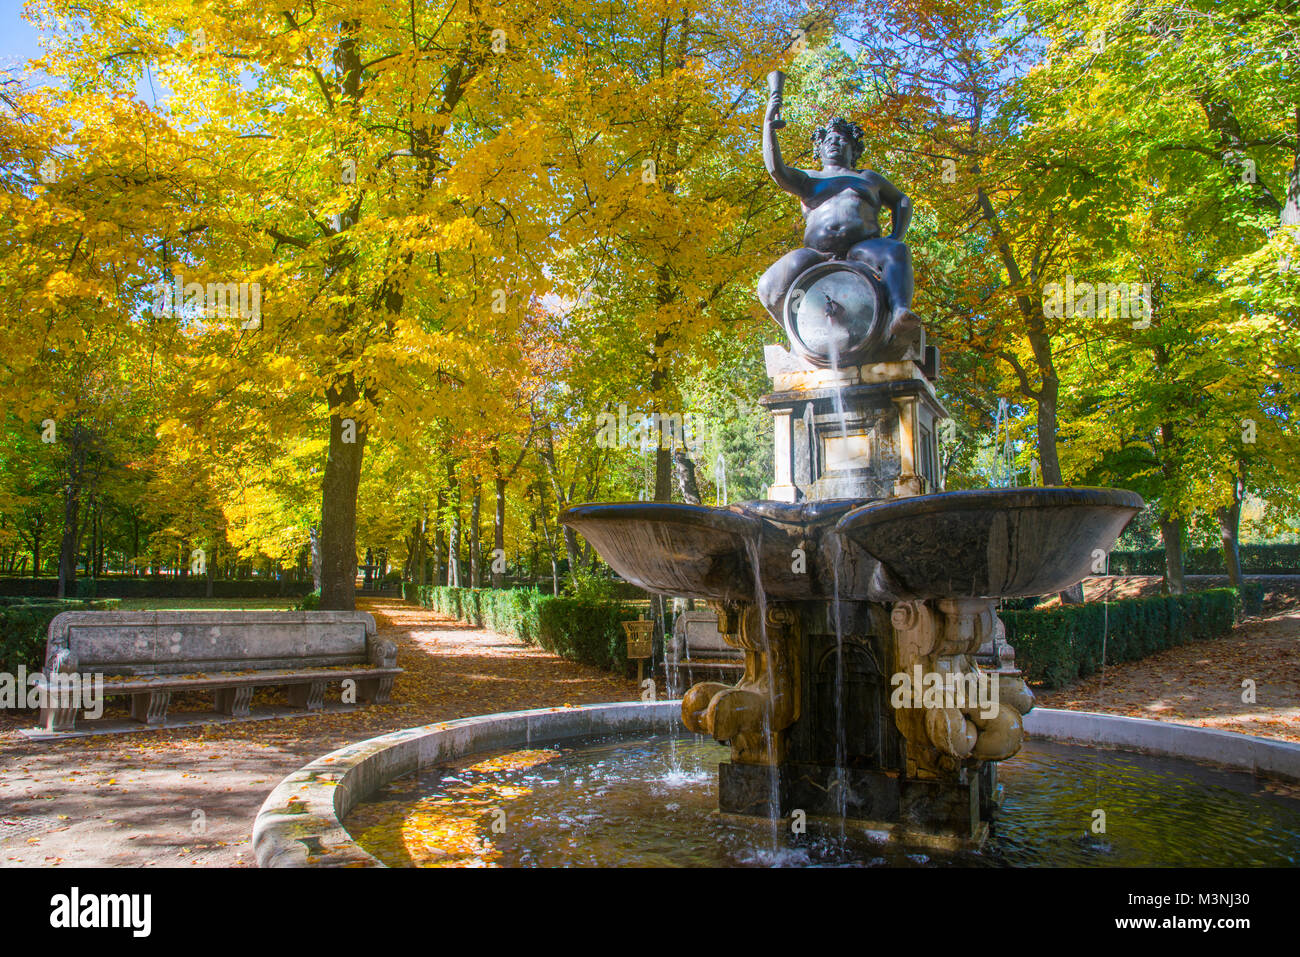 Baco fountain and La Isla gardens in Autumn. Aranjuez, Madrid province, Spain. - Stock Image